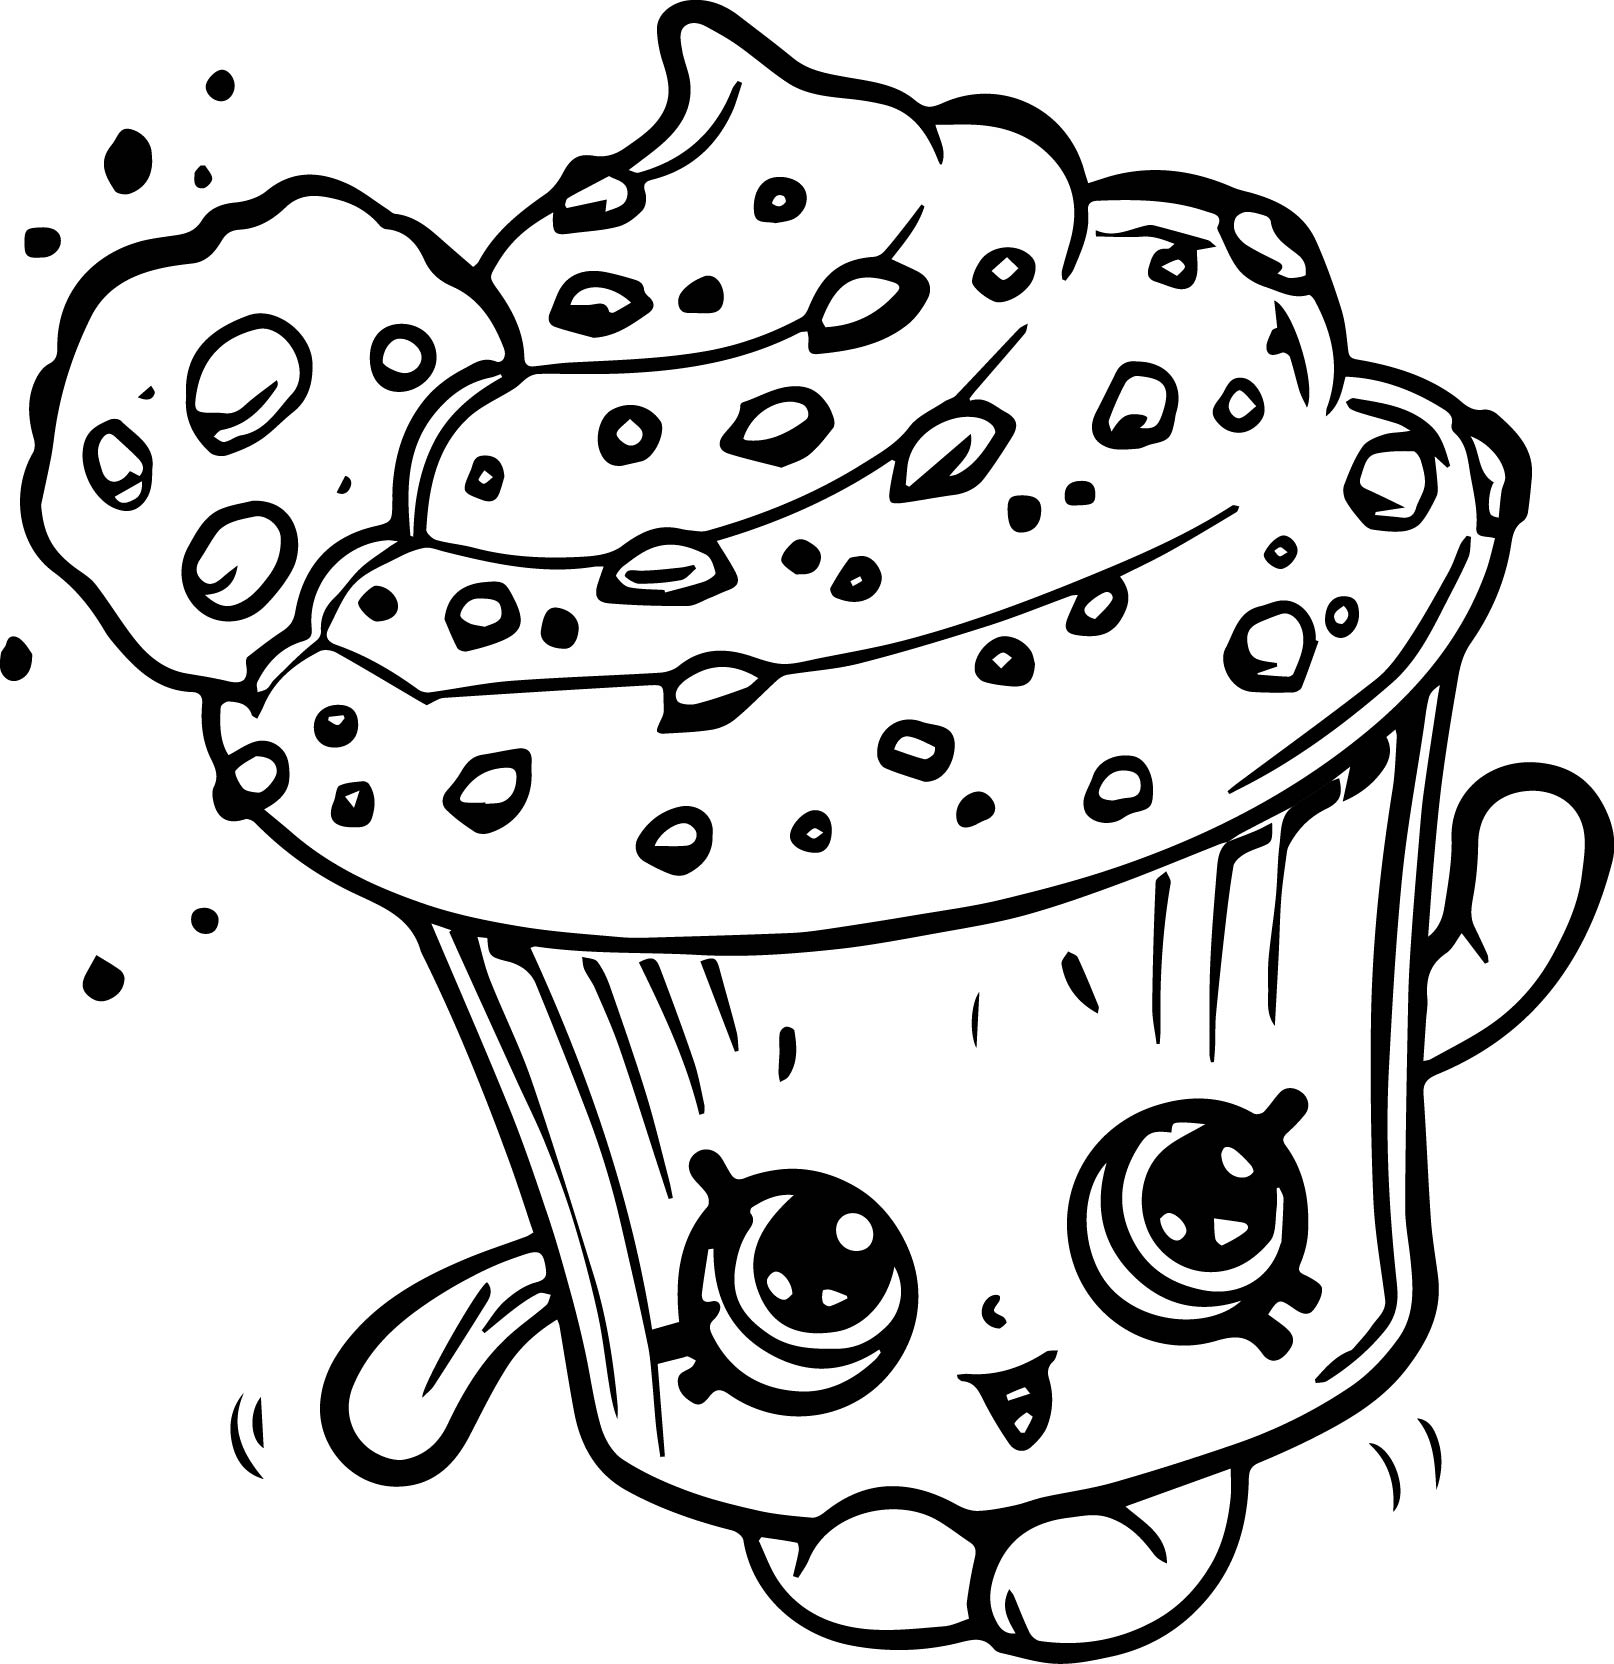 shopkins cupcake coloring pages shopkin coloring pages at getdrawings free download shopkins coloring cupcake pages